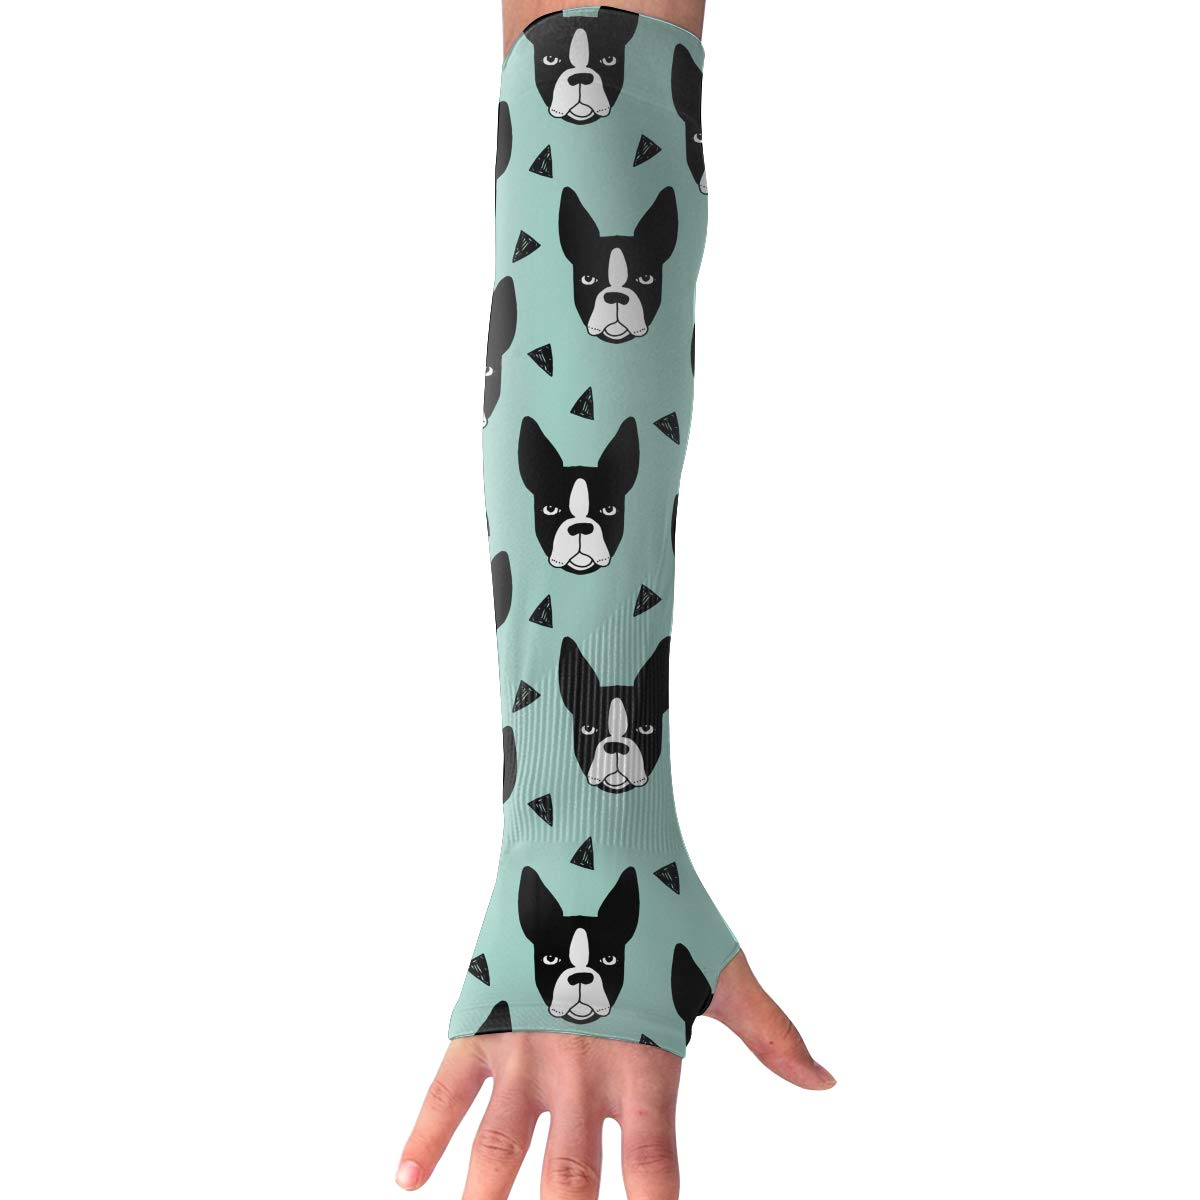 Game Life Boston Terrier French Bulldog-1 UV Sun Protective Outdoors Stretchy Cool Arm Sleeves Warmer Long Fashion Sleeve Glove